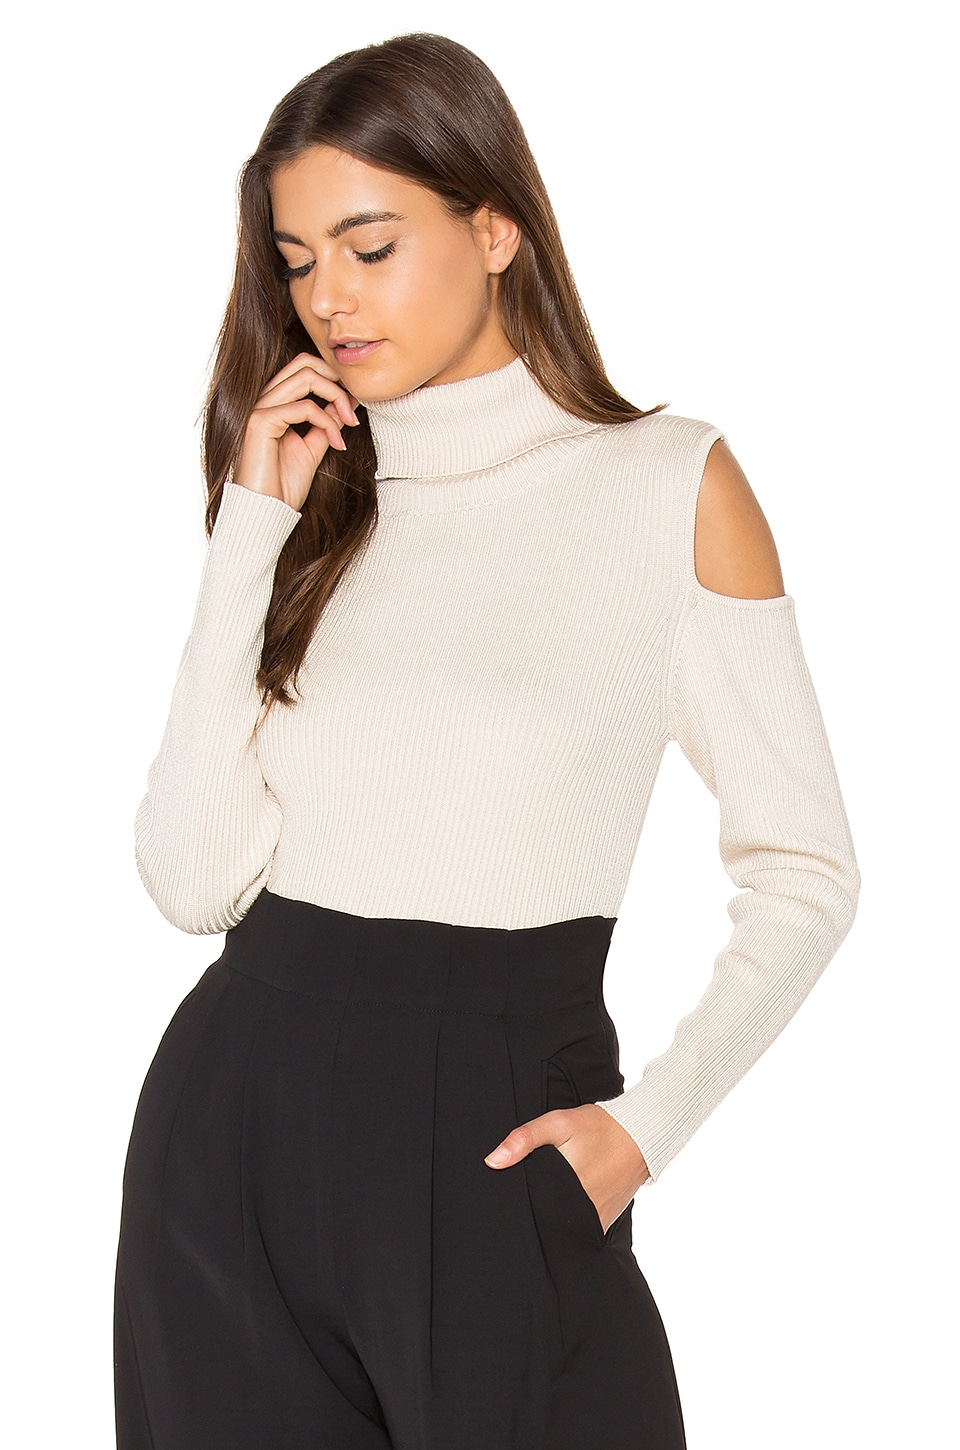 Cut Out Ribbed Turtleneck Sweater by 525 america